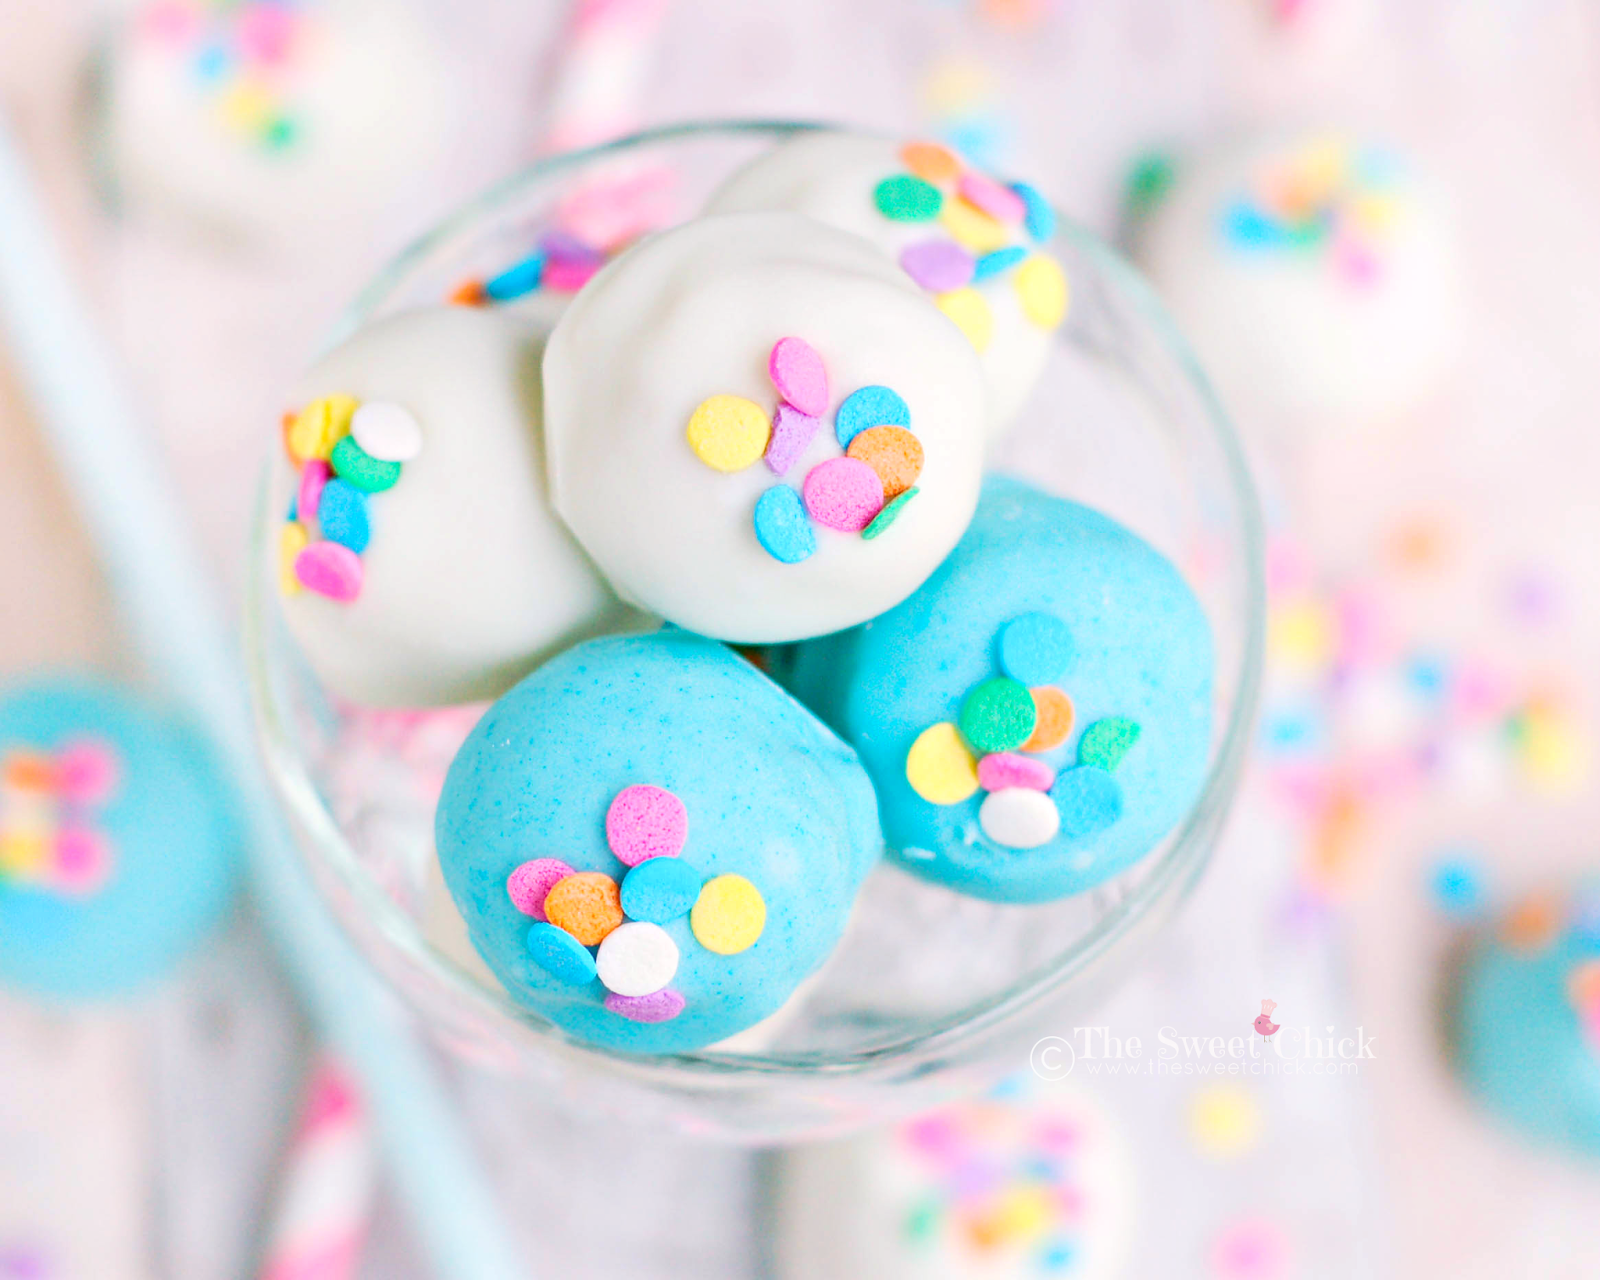 Cotton Candy Oreo Truffle by The Sweet Chick